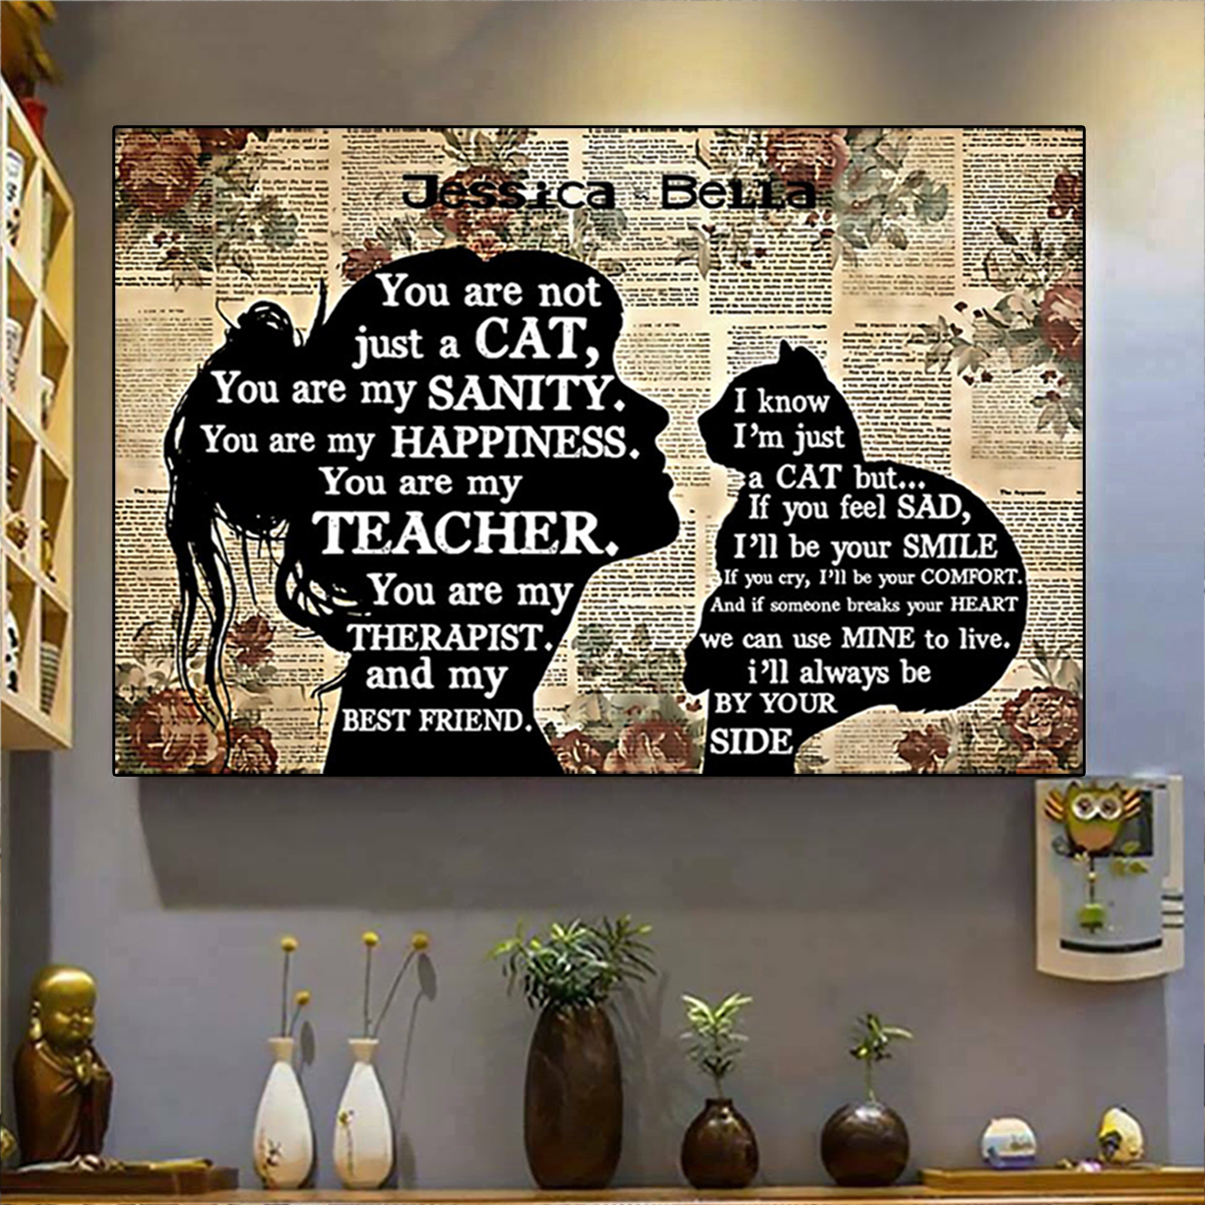 Personalized custom name cat you are my teacher poster A2